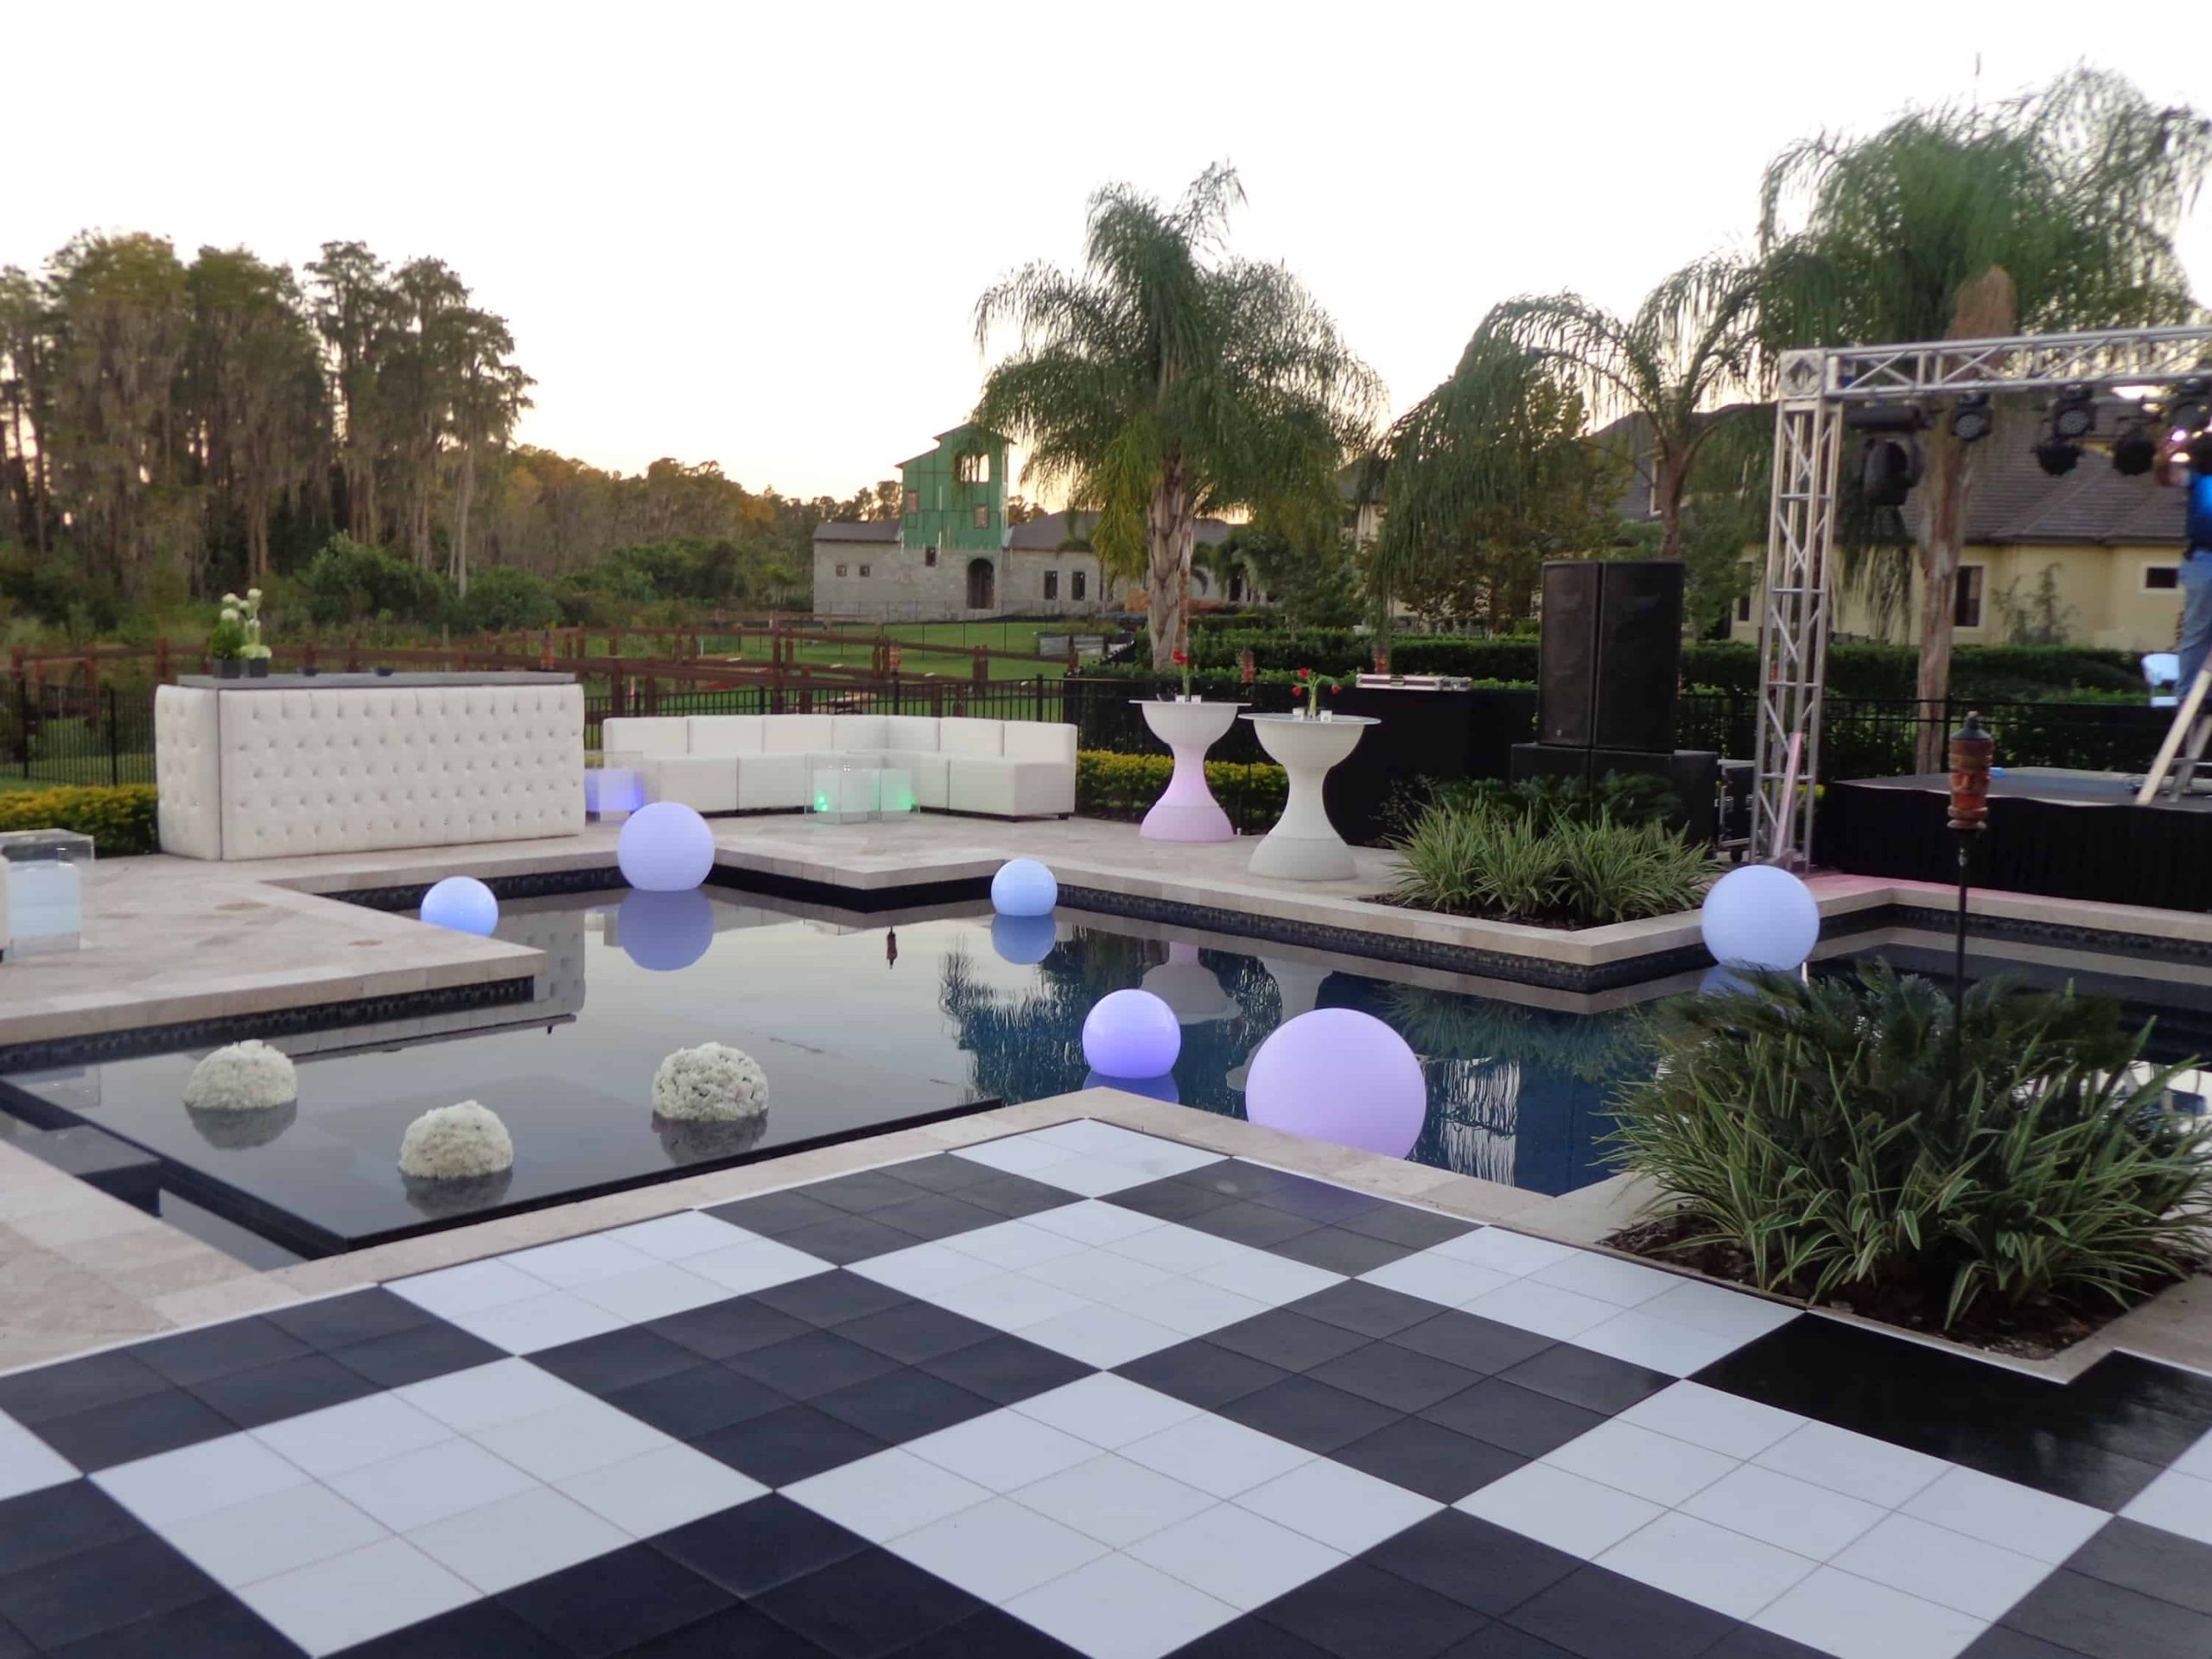 Outdoor chess ideas 1 Chess Floor Ideas To Present A Game Vibe In Any Room Of Your House